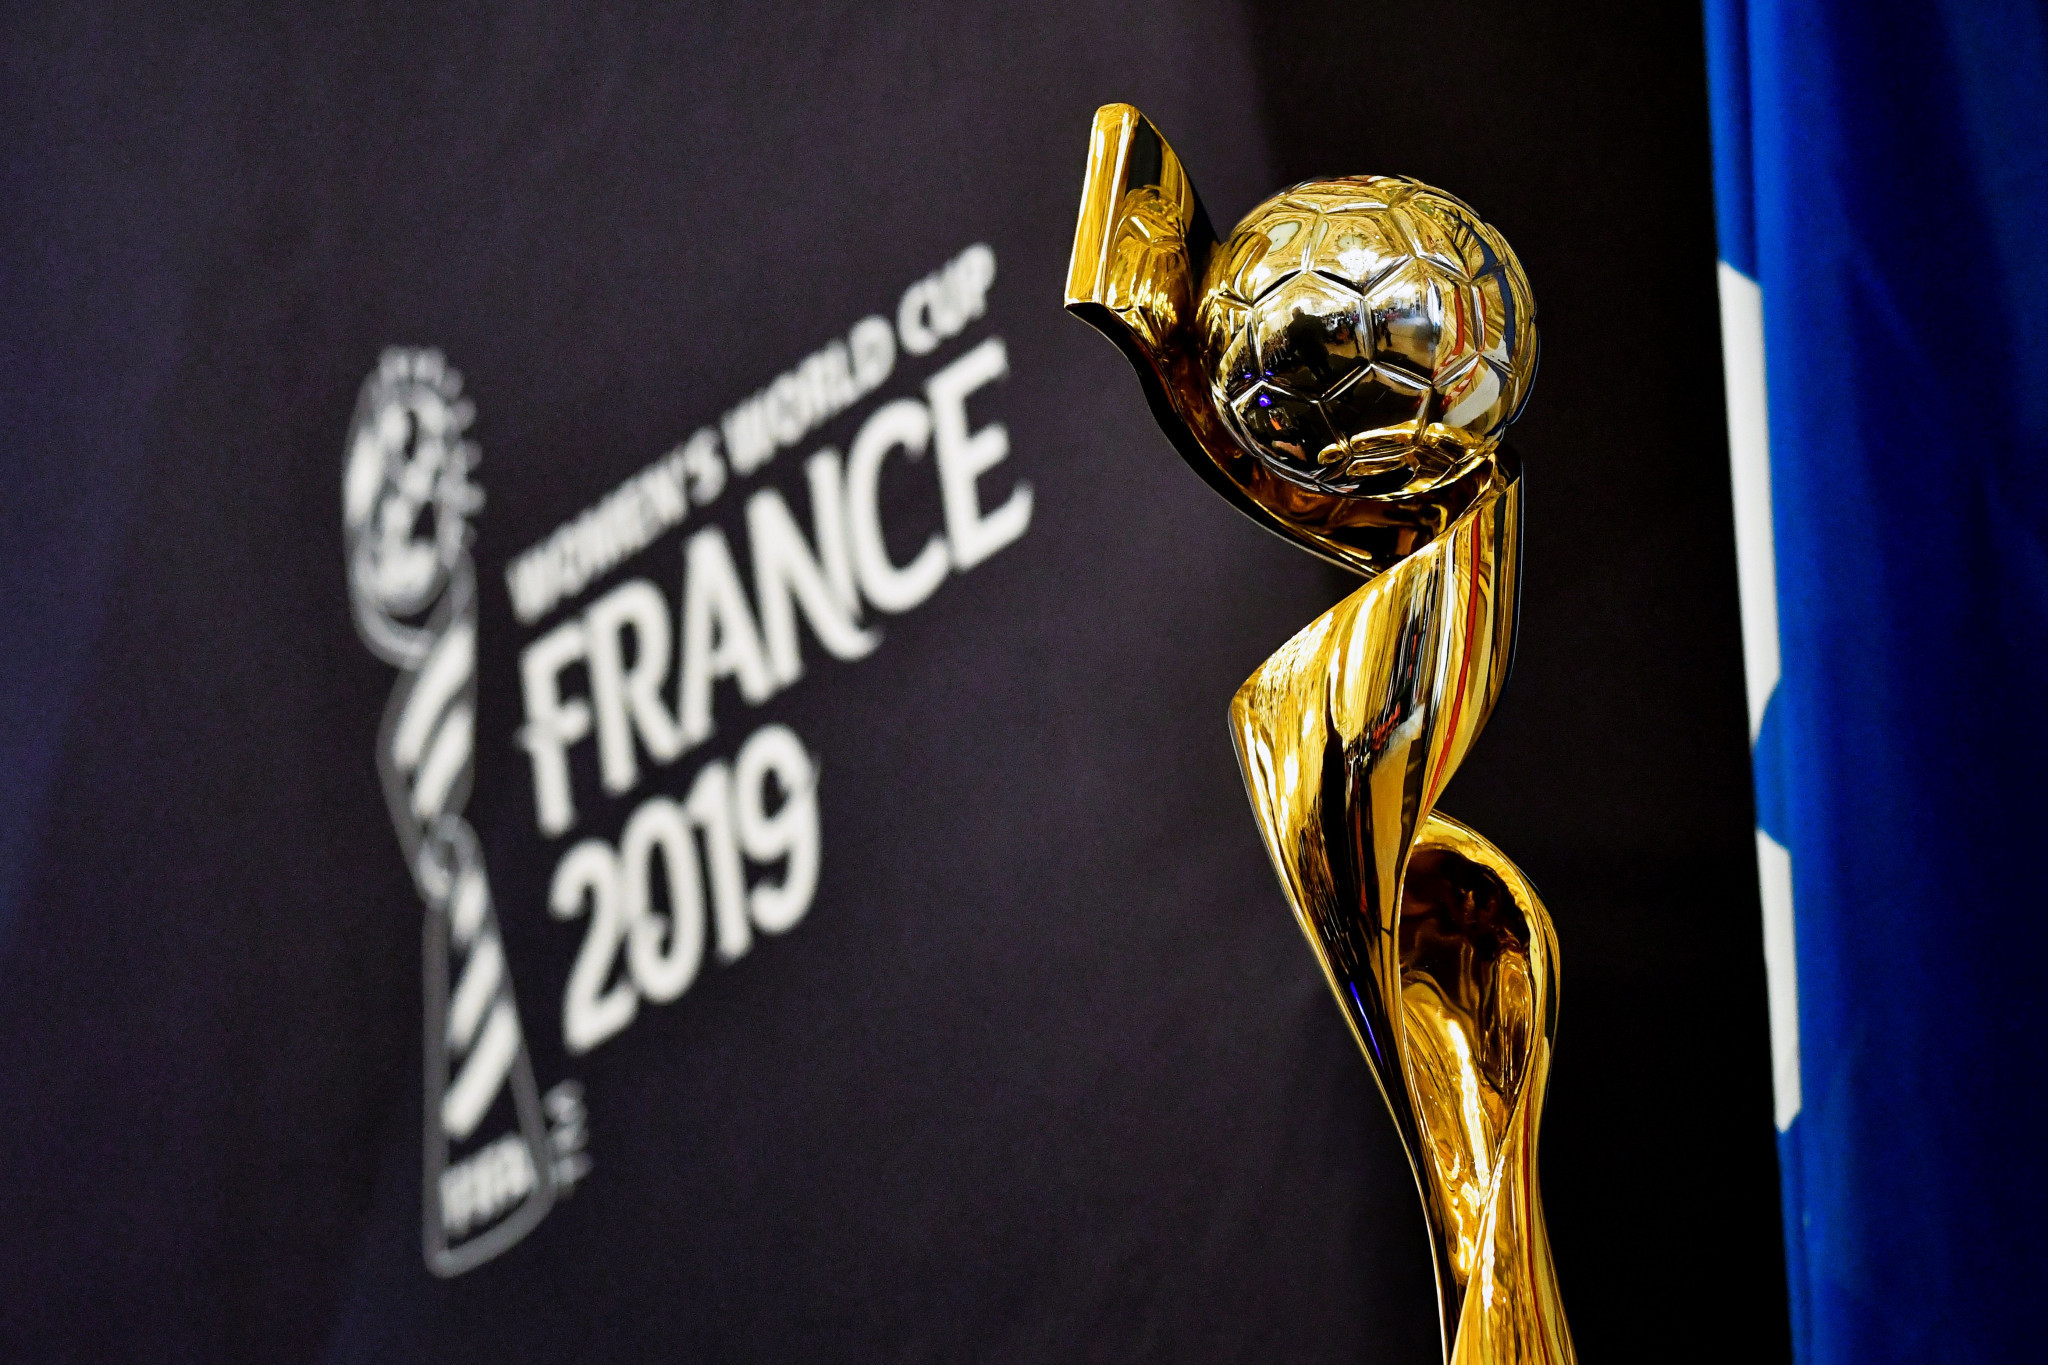 Report reveals 2019 FIFA Women's World Cup contributed €284 million to French GDP